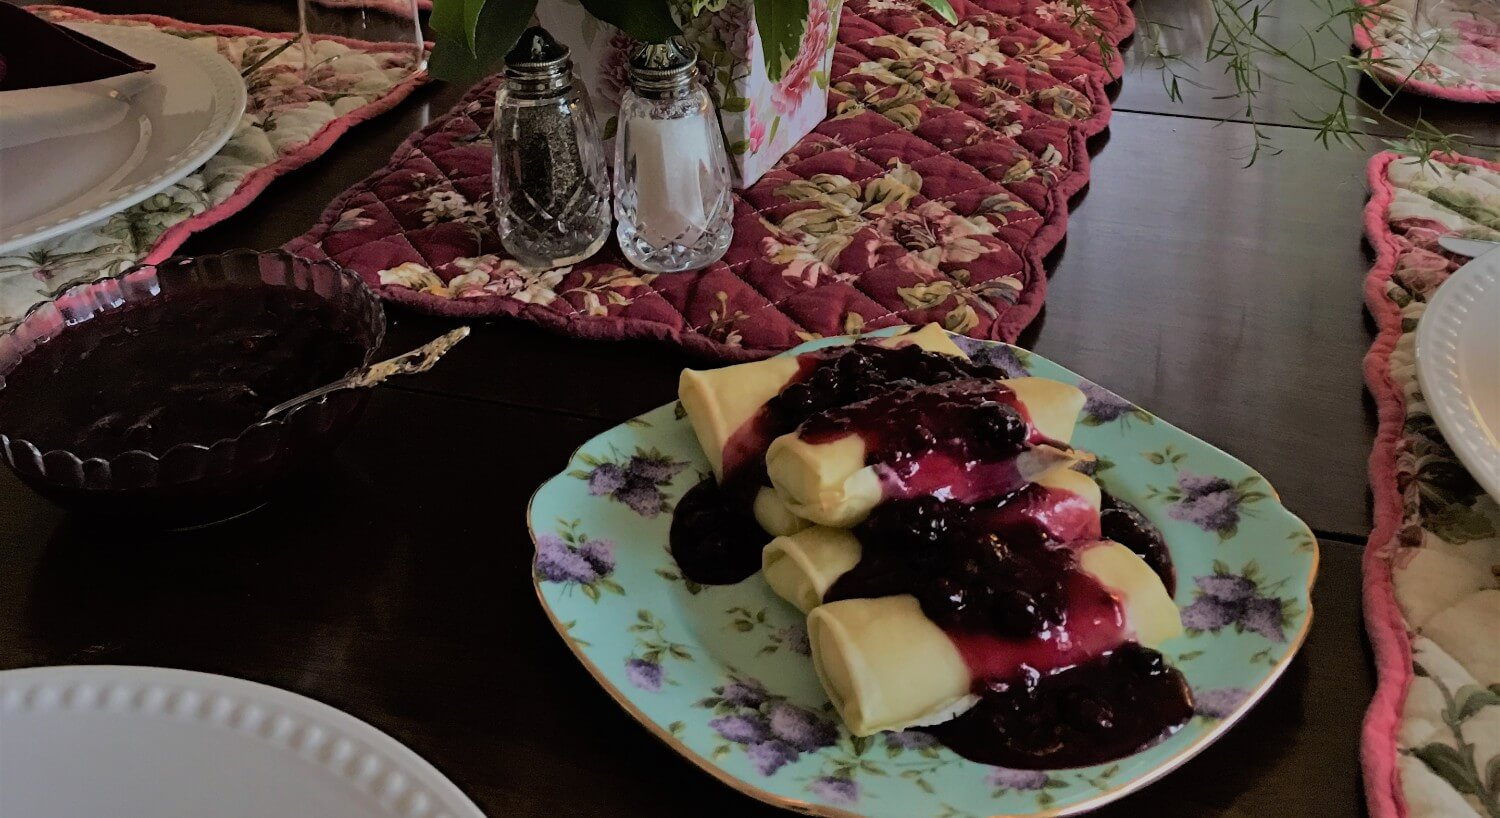 Cheese blintzes covered with blueberry compote on a china plate.